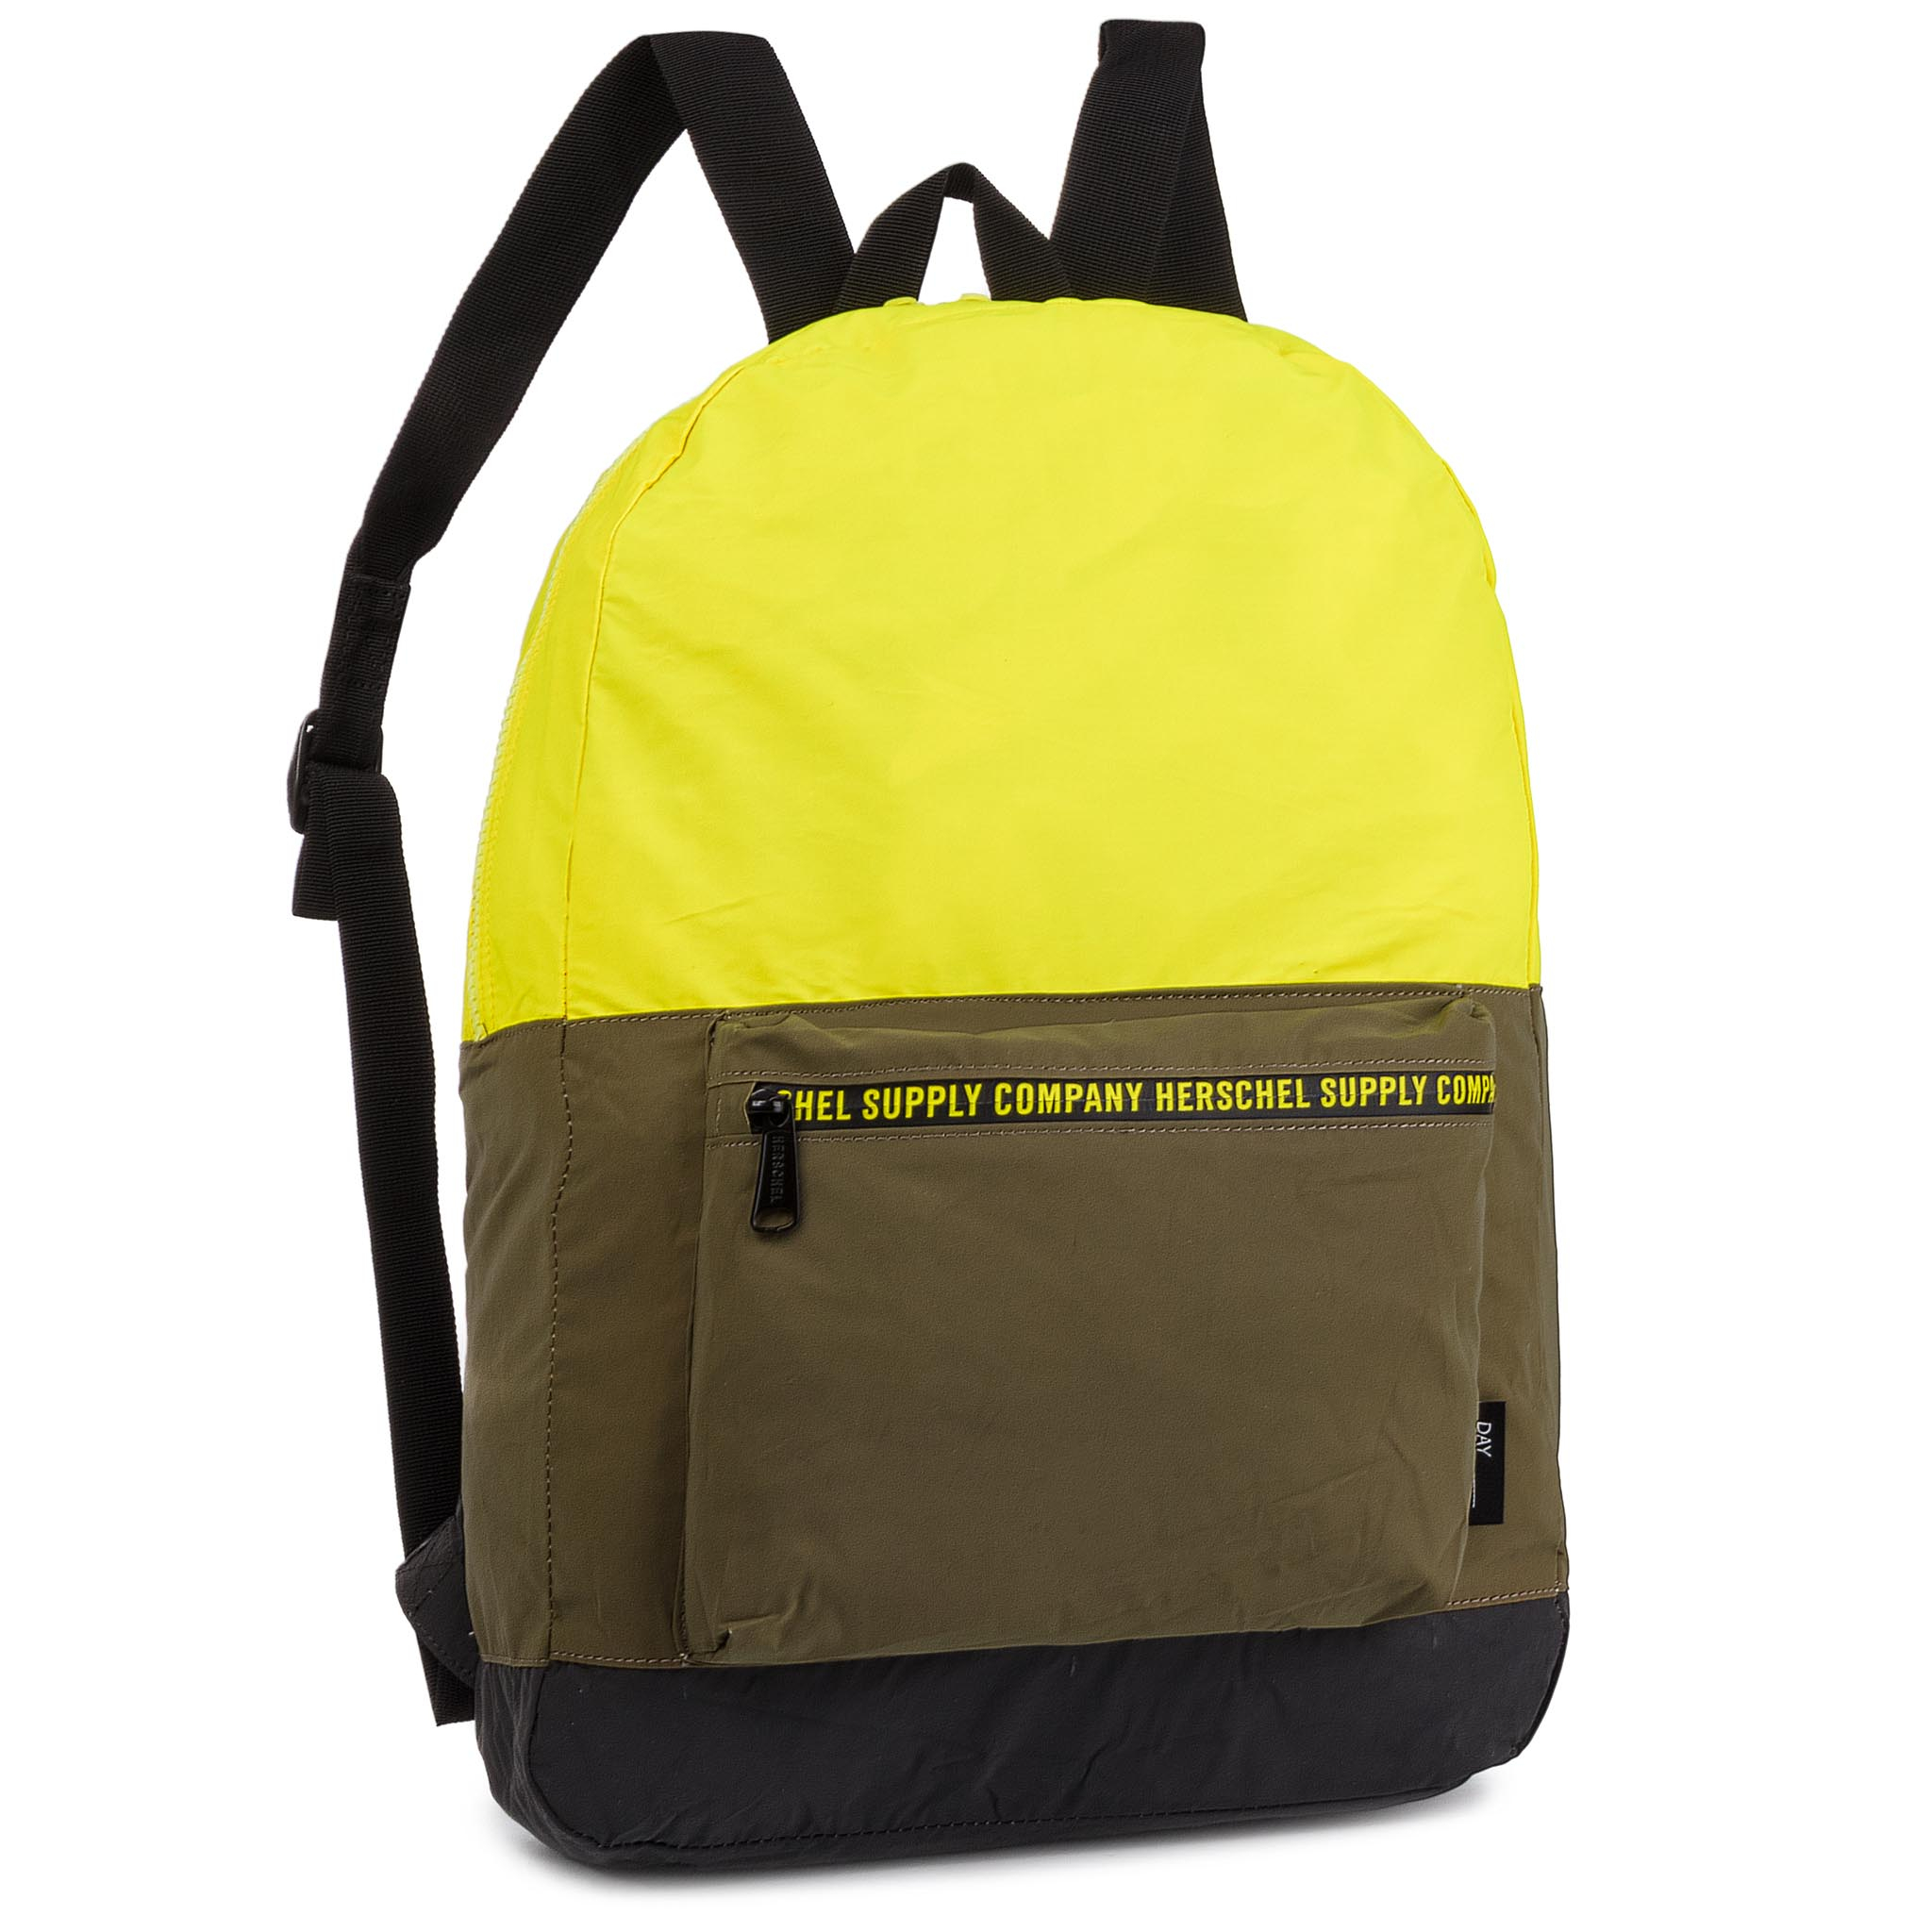 Rucsac Herschel - Day/Night Packable Daypack 10474-02544 Sulfur Spring/Olive Night/Black Reflective imagine epantofi.ro 2021